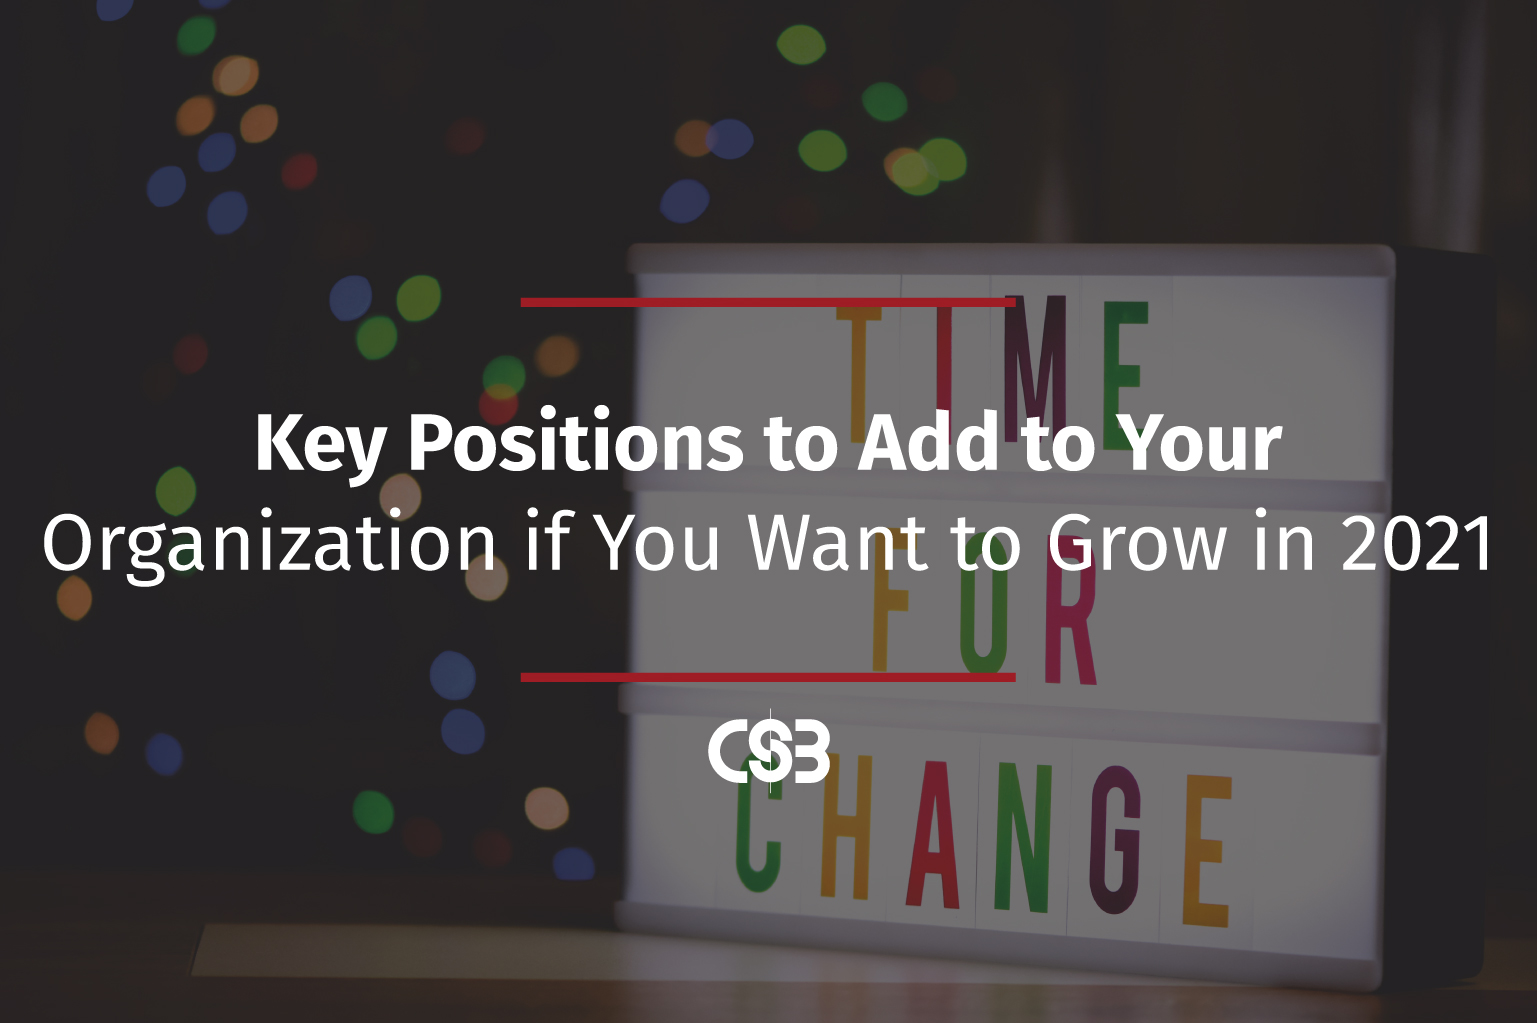 Key-Positions-to-Add-to-Your-Organization-if-You-Want-to-Grow-in-2021